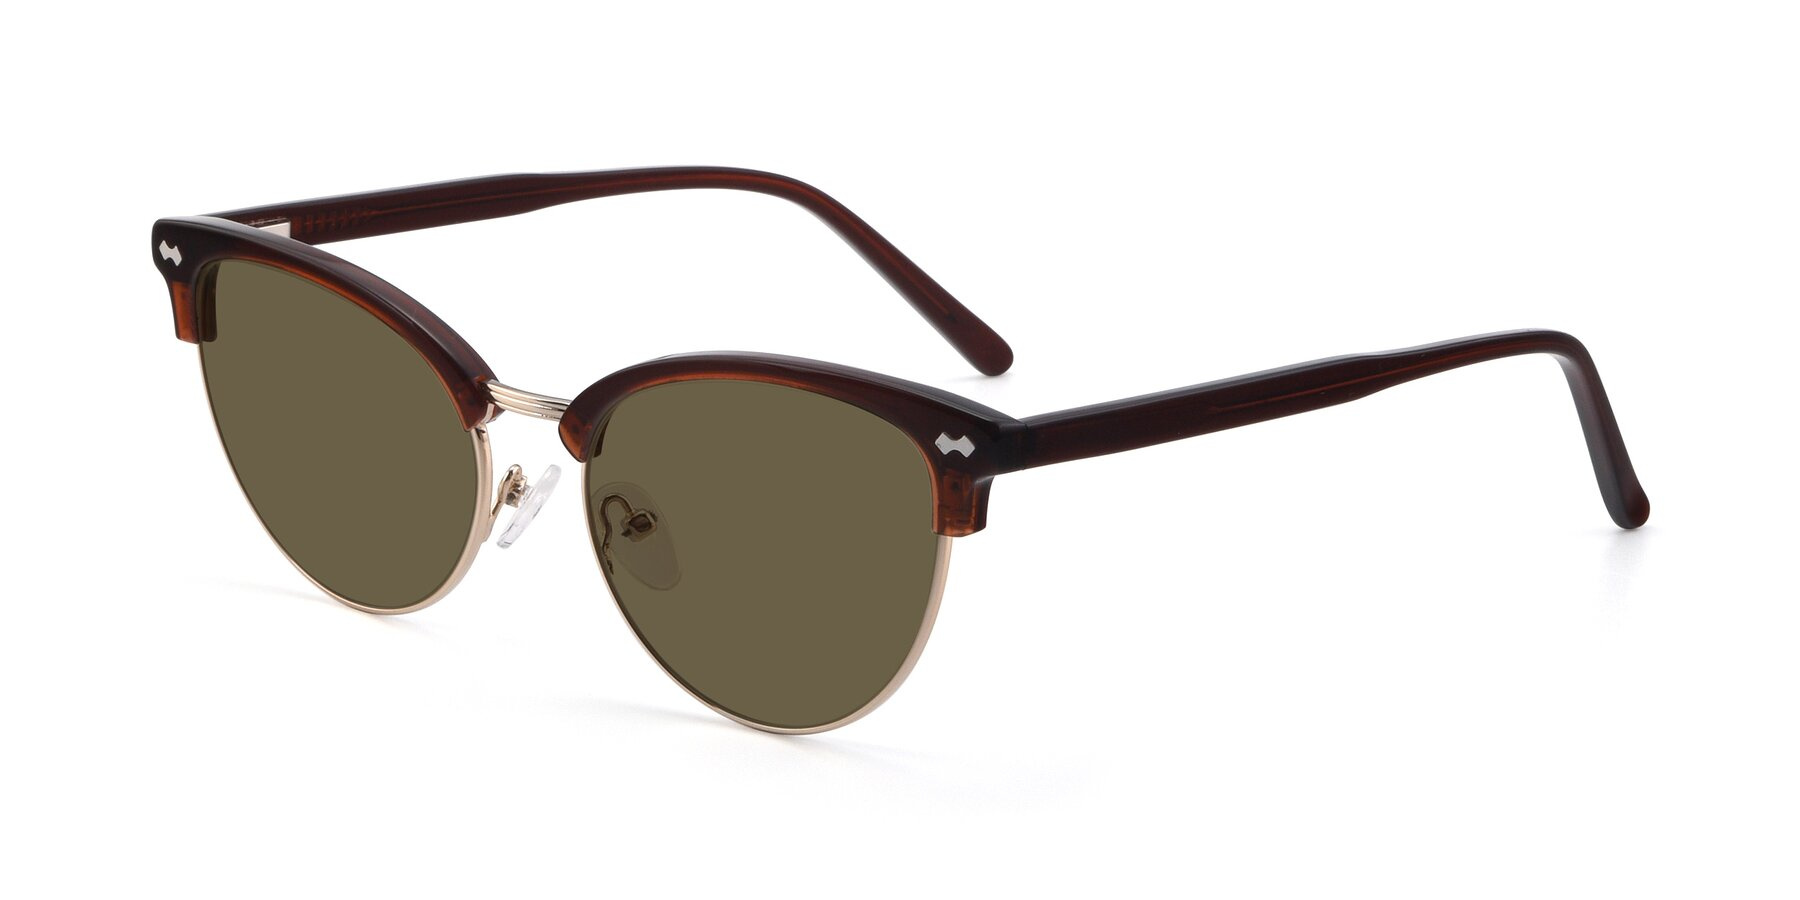 Angle of 17461 in Tortoise-Black with Brown Polarized Lenses